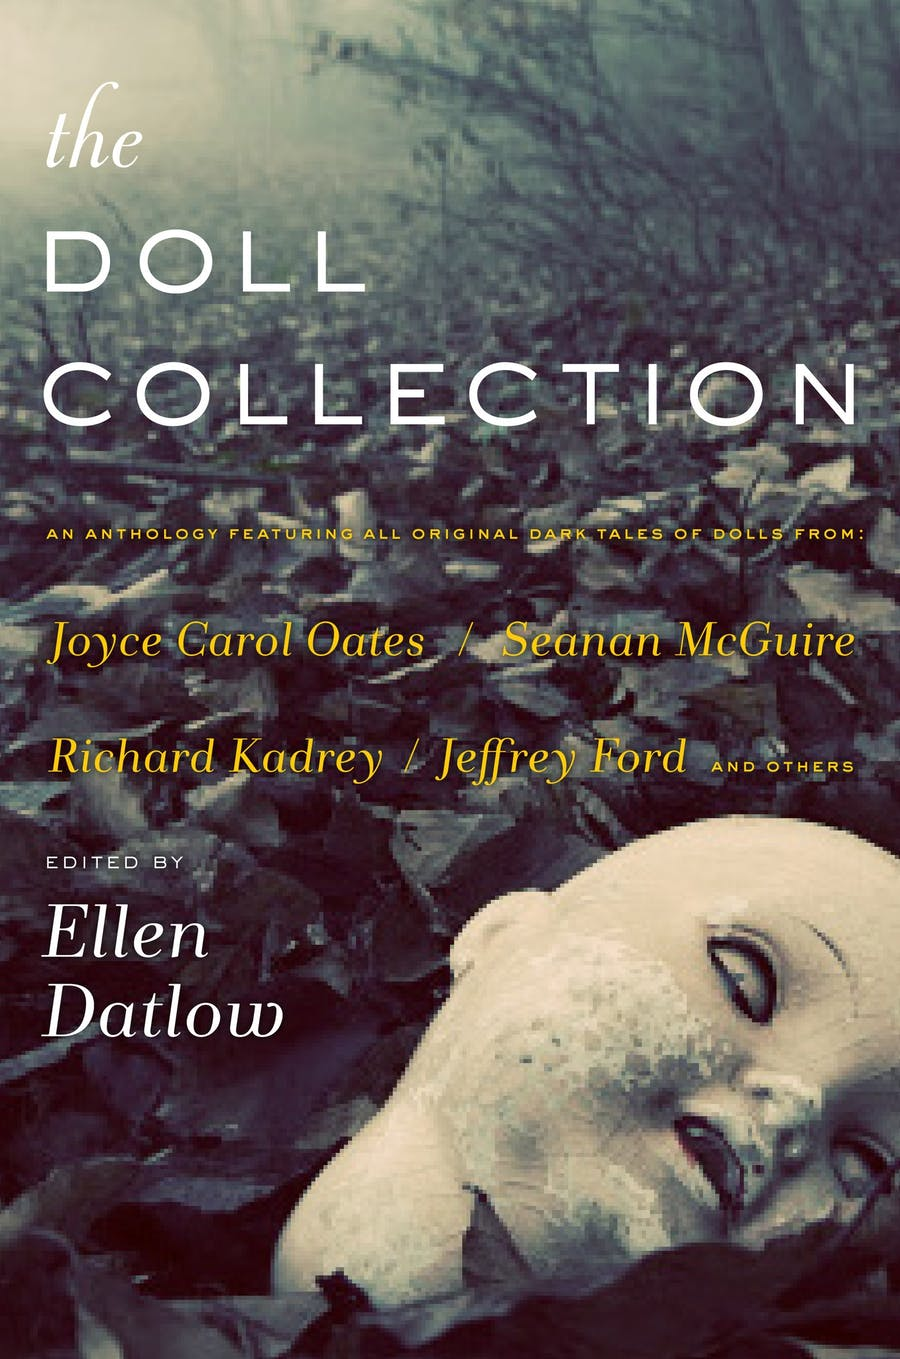 The Doll Collection by Edited by Ellen Datlow